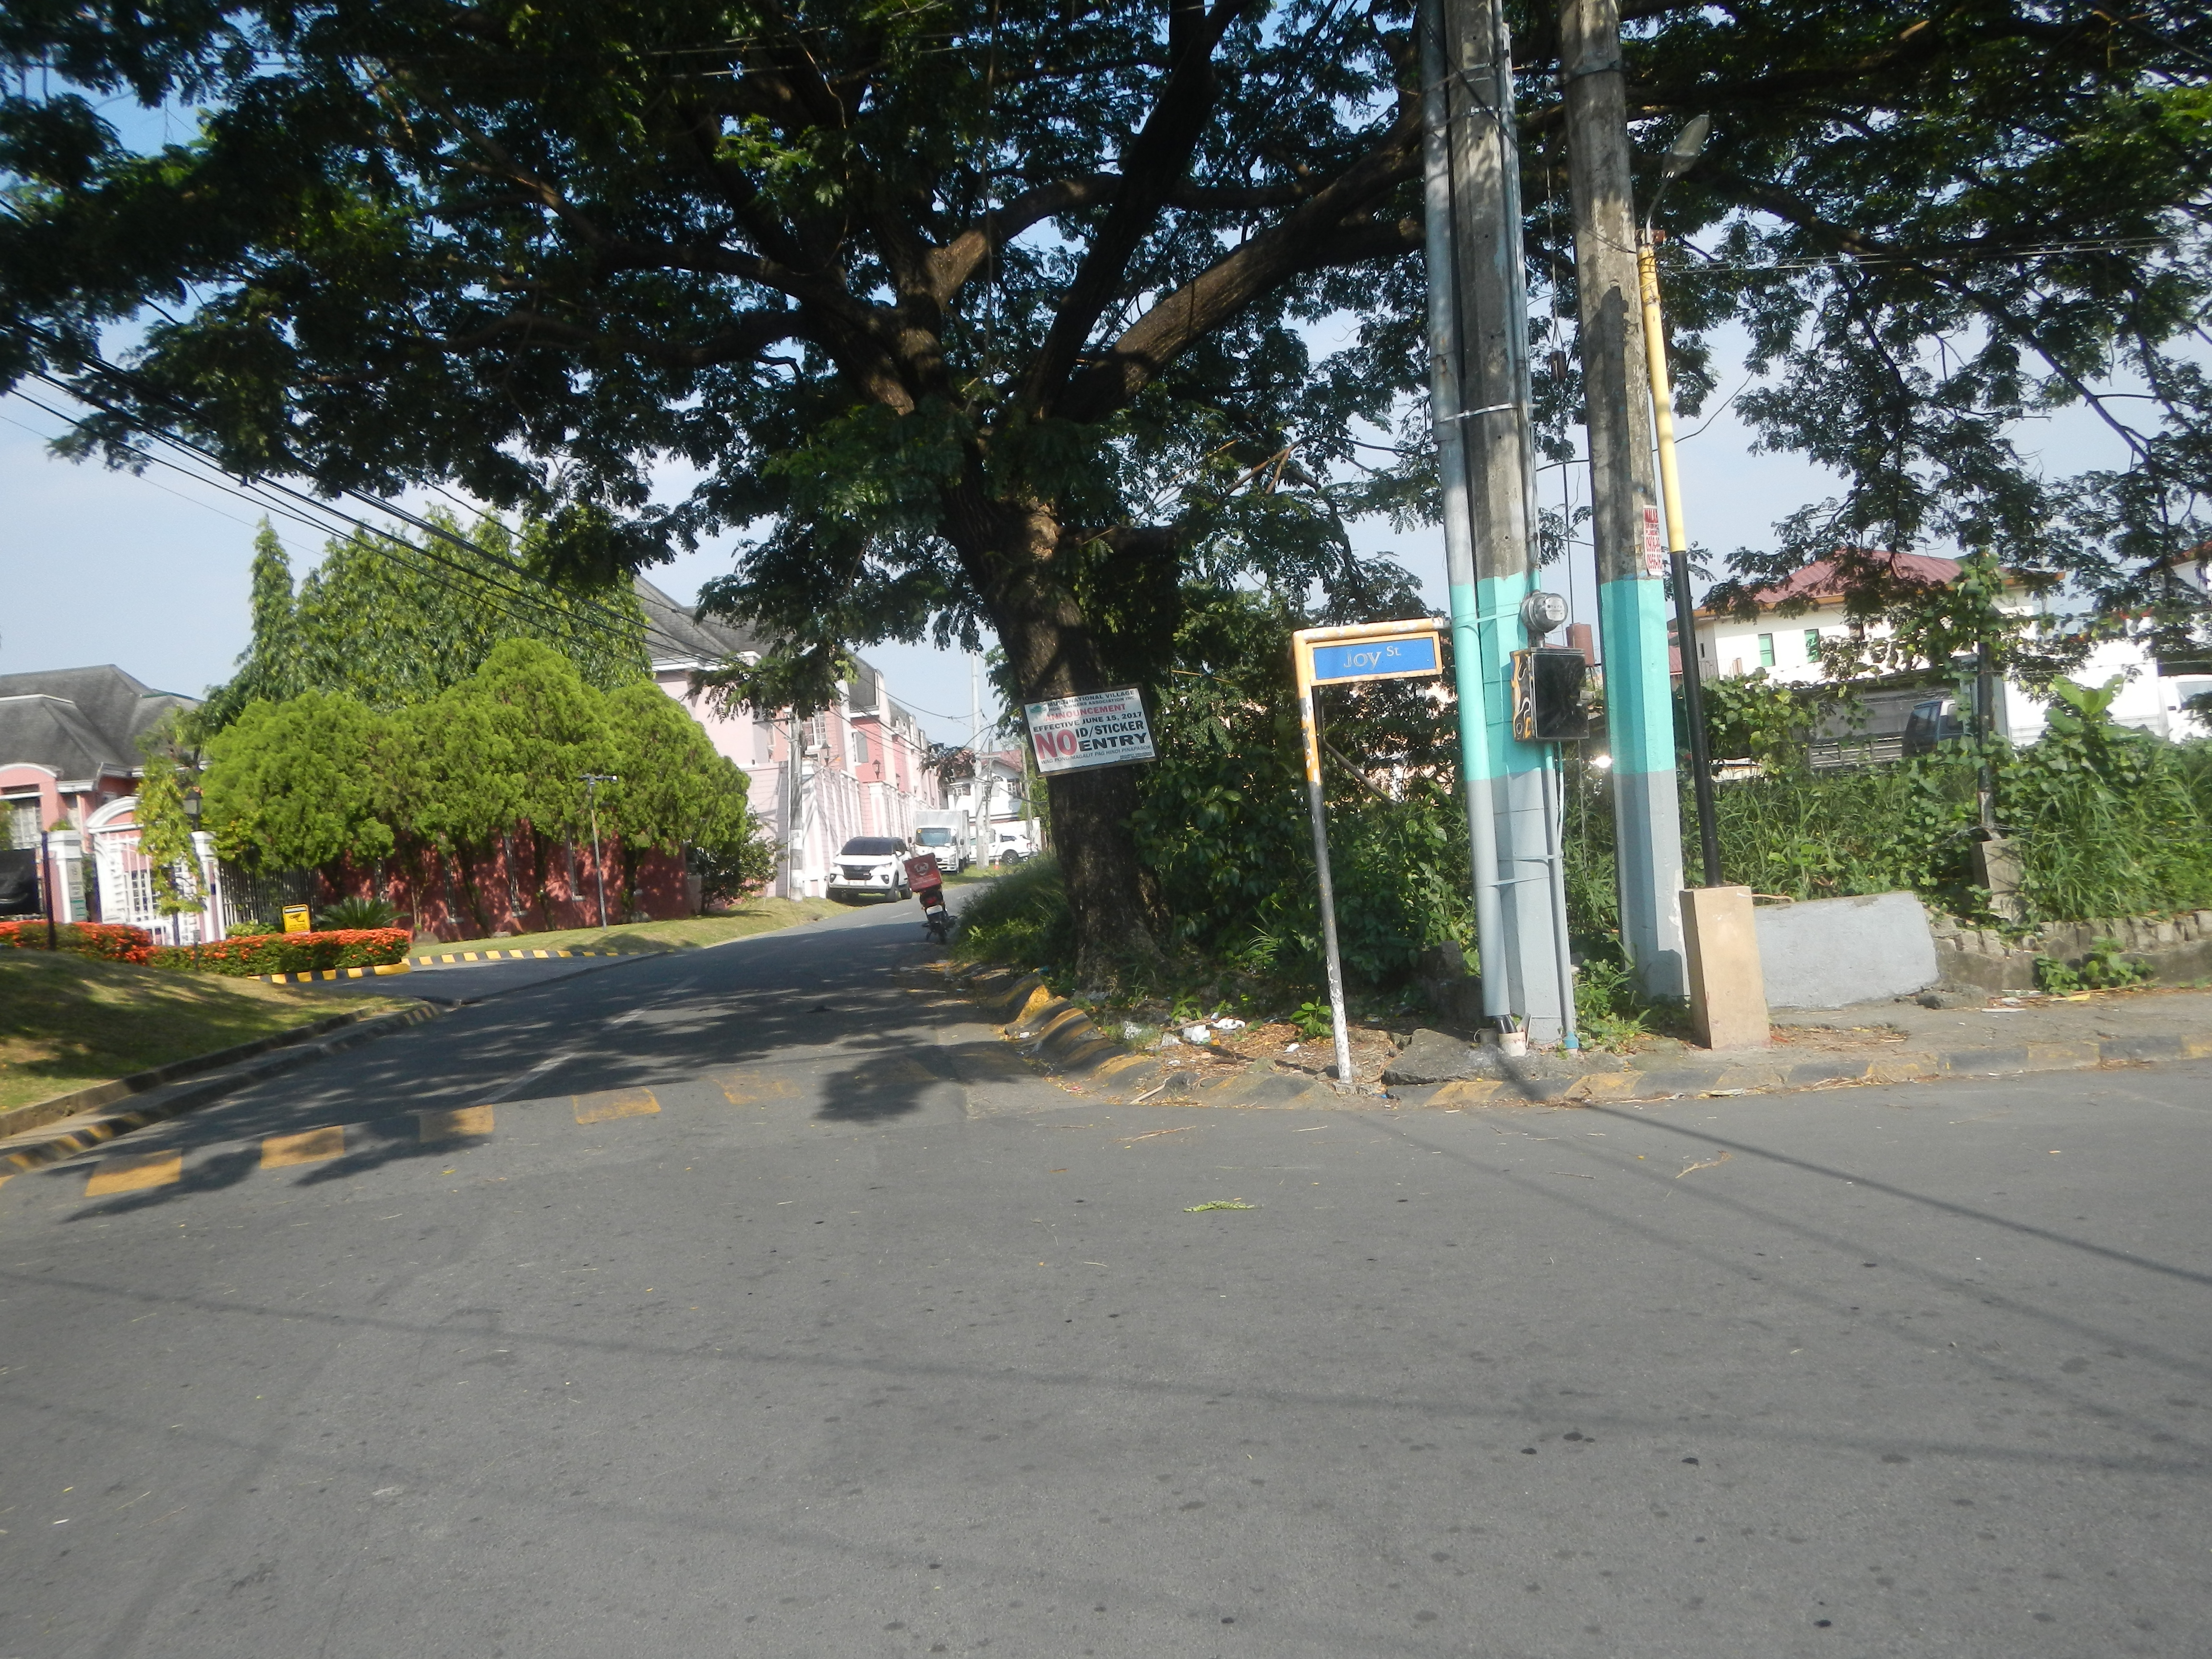 File:8246Villages Moonwalk, Parañaque City 08 jpg - Wikimedia Commons